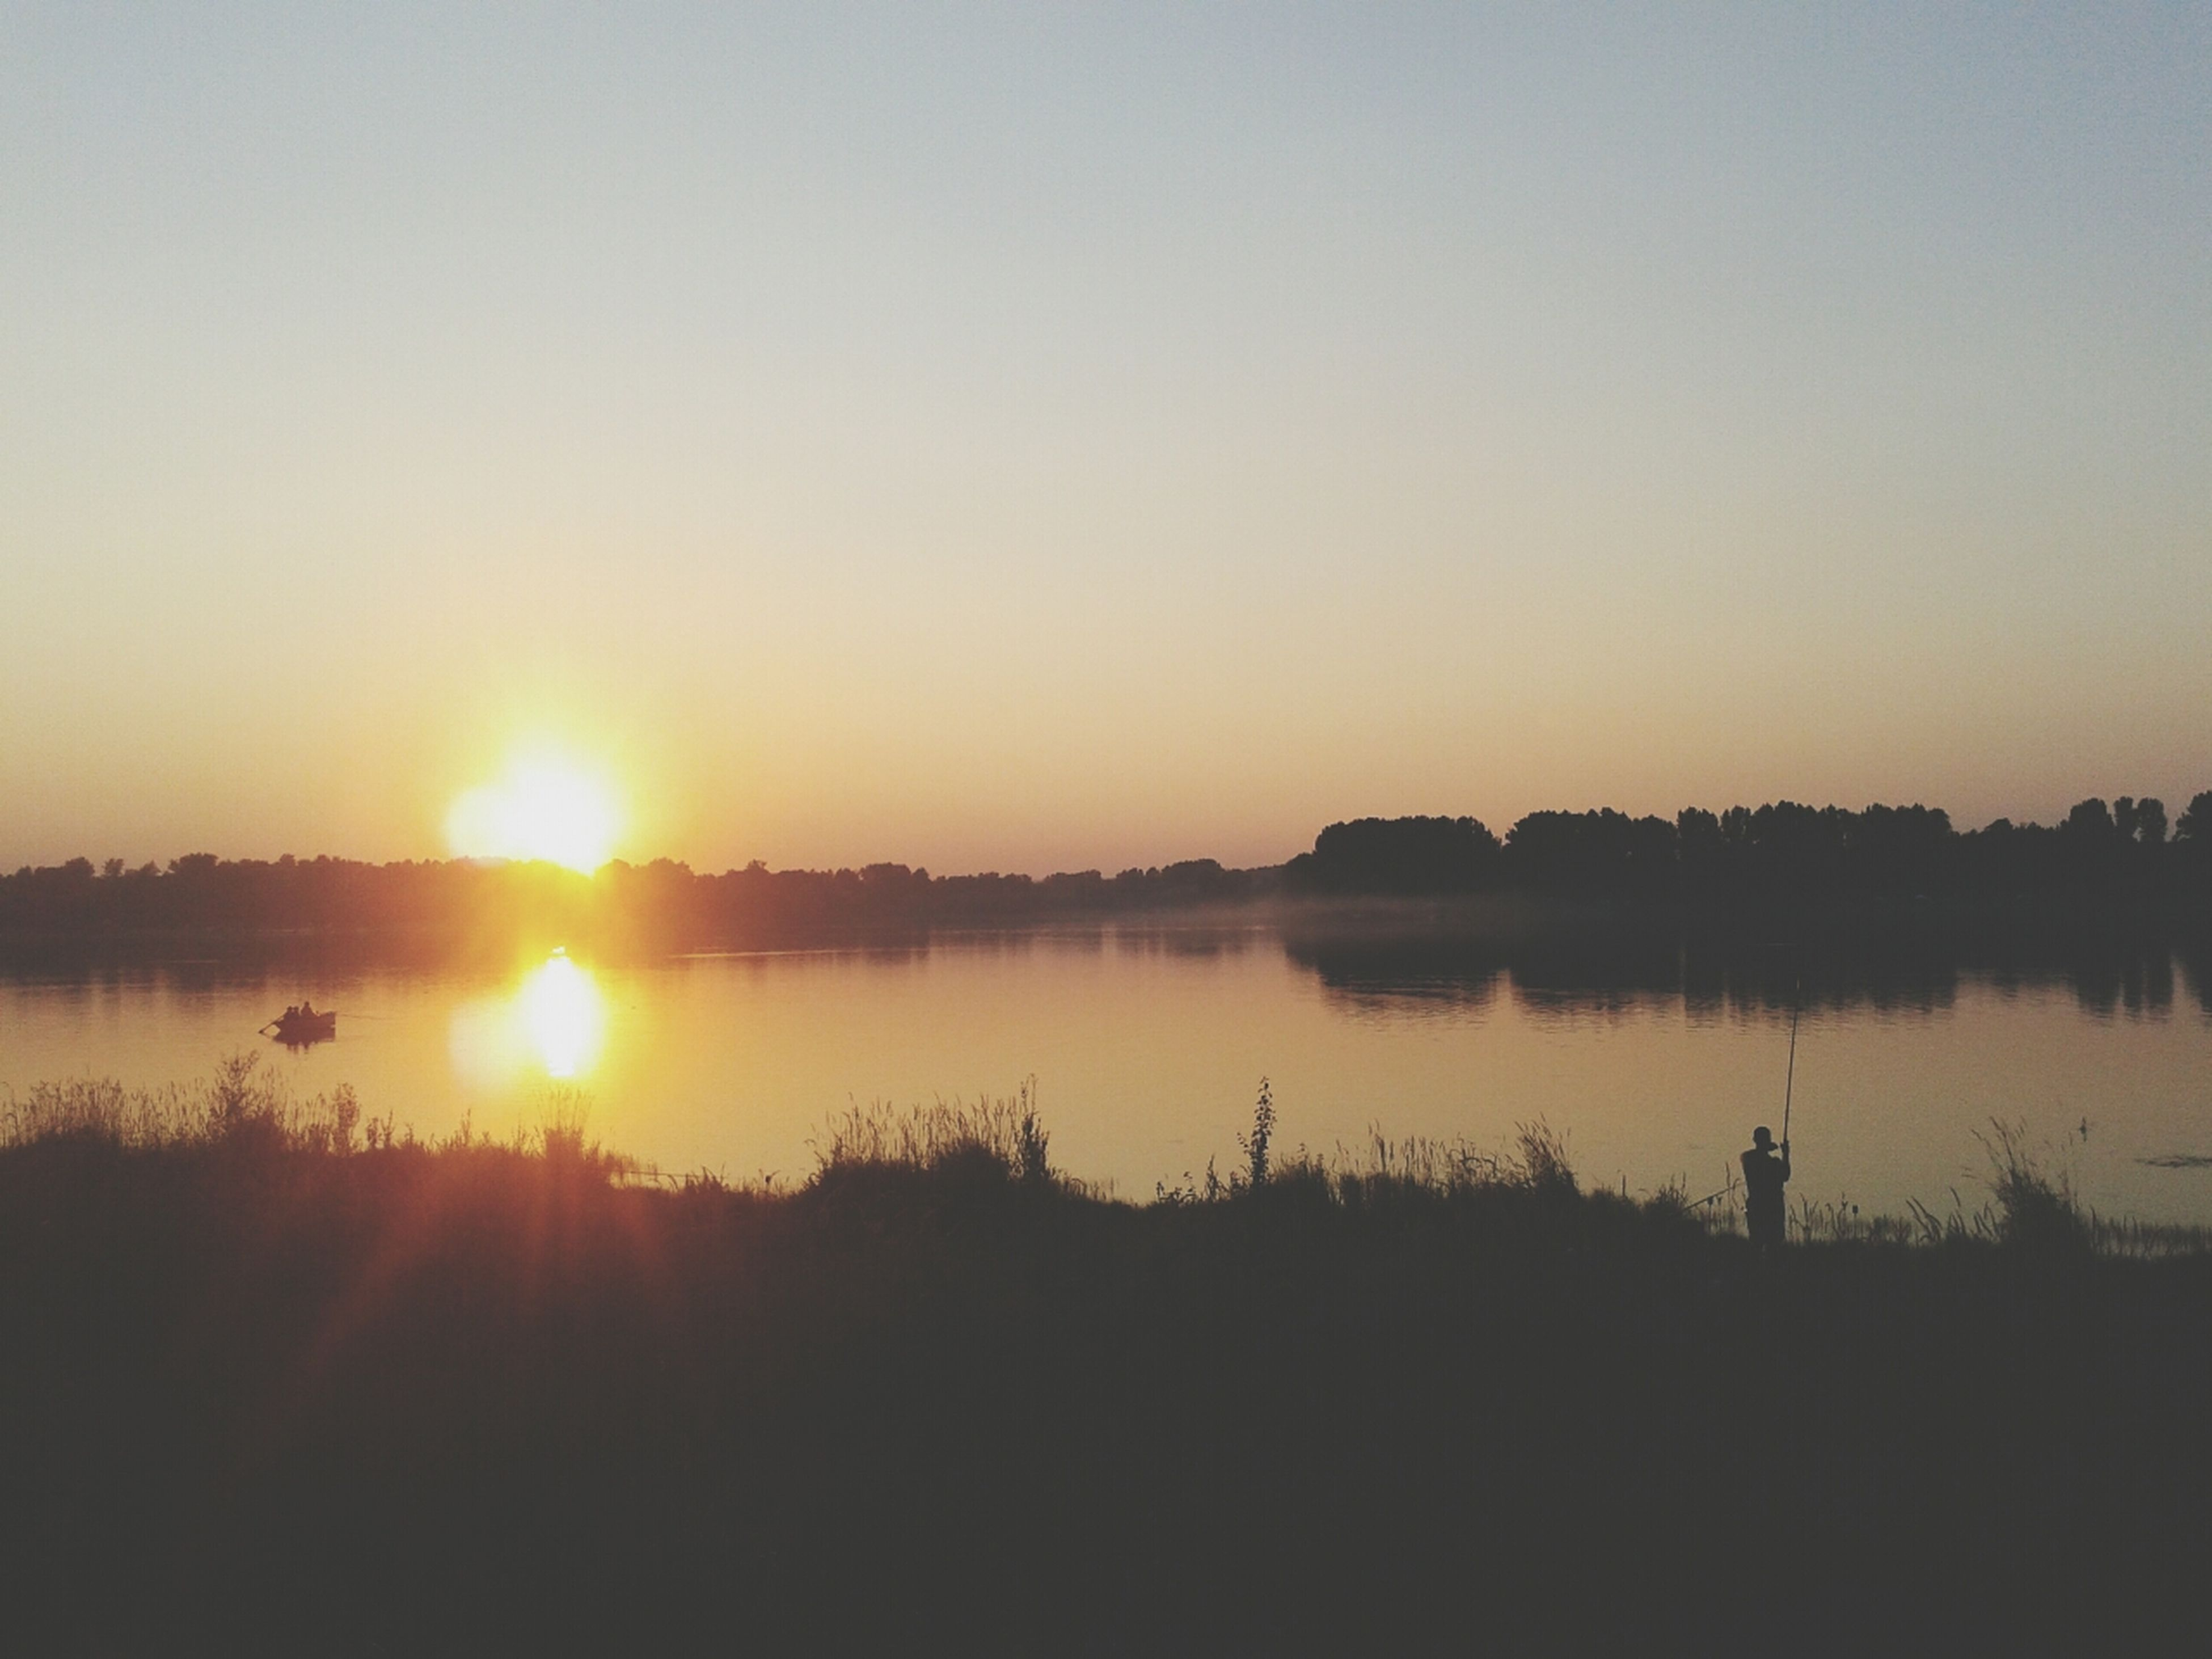 sunset, sun, tranquil scene, tranquility, scenics, water, reflection, beauty in nature, silhouette, clear sky, lake, copy space, nature, orange color, idyllic, sunlight, sky, landscape, tree, outdoors